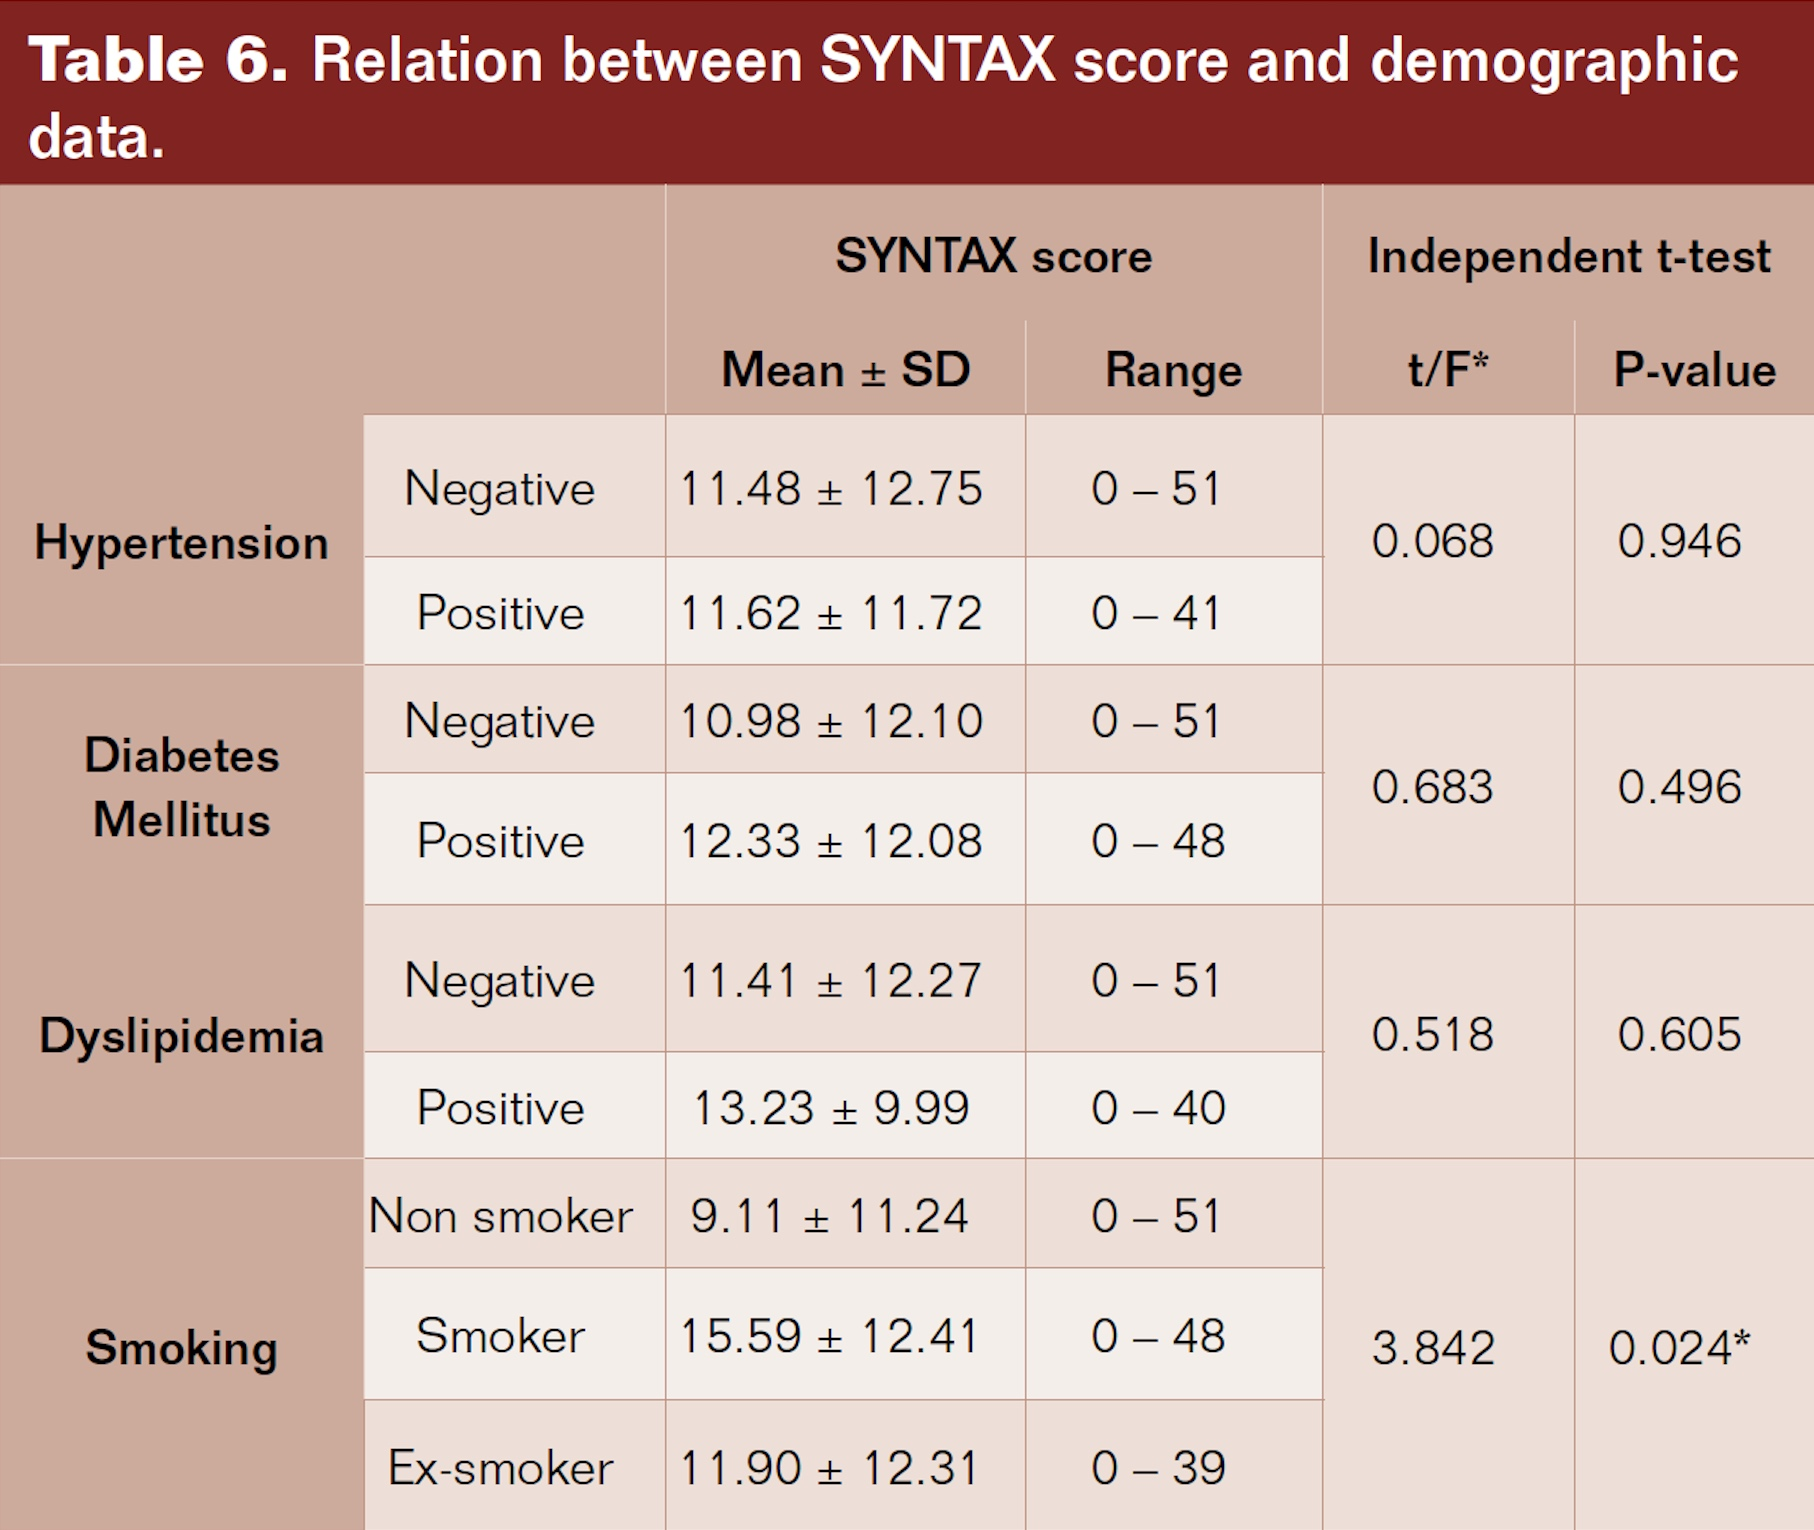 Relation between SYNTAX score and demographic data